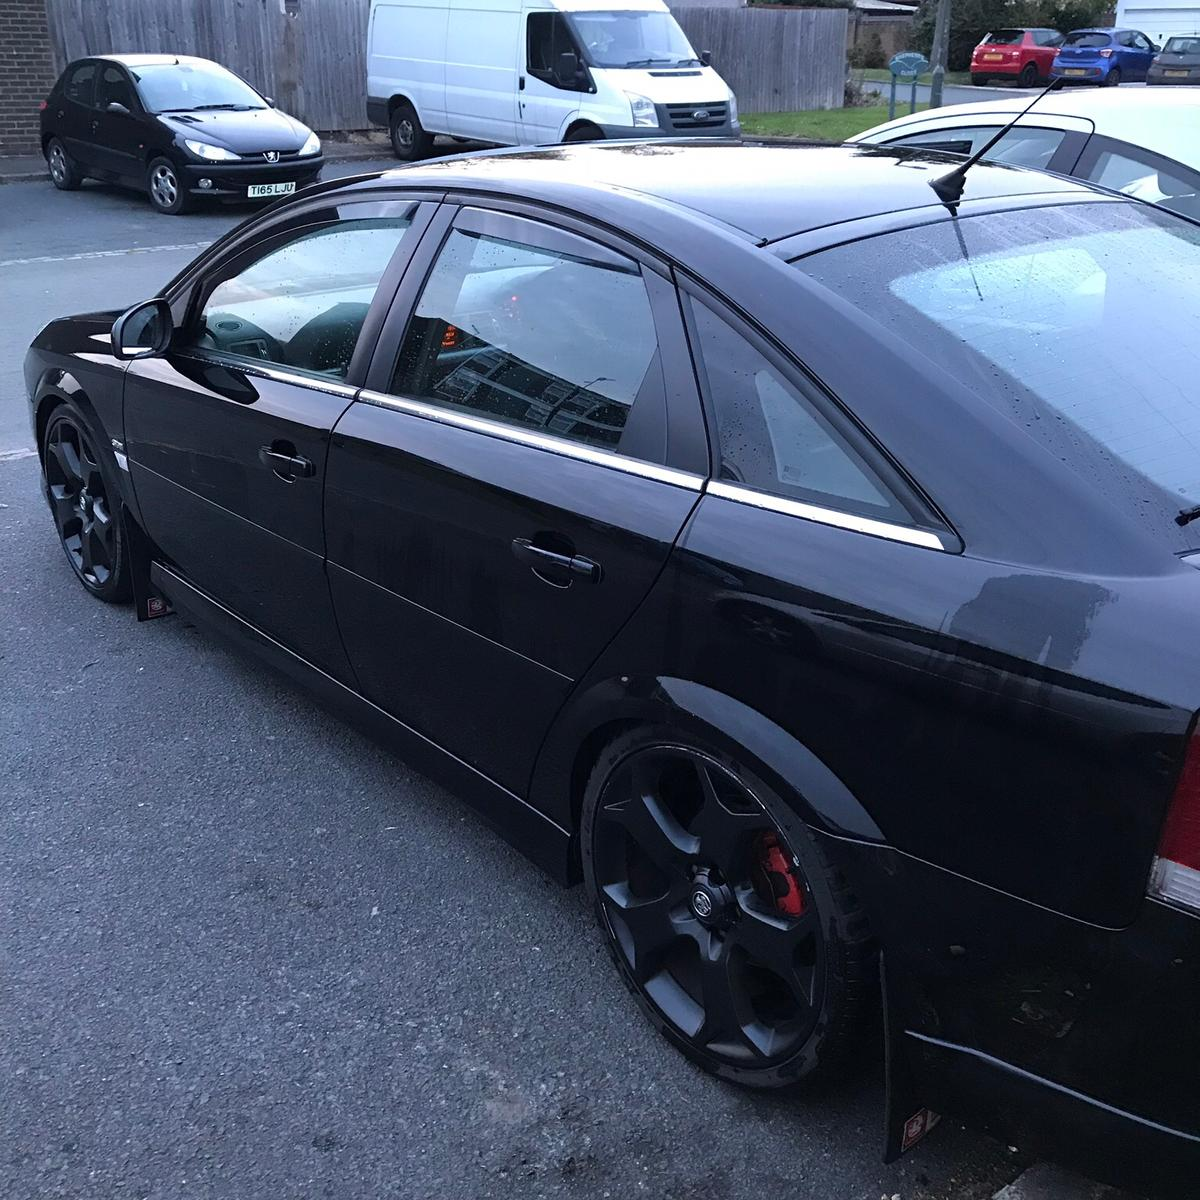 Vectra 1 9 cdti 150bhp xp in WR9 Wychavon for £1,750 00 for